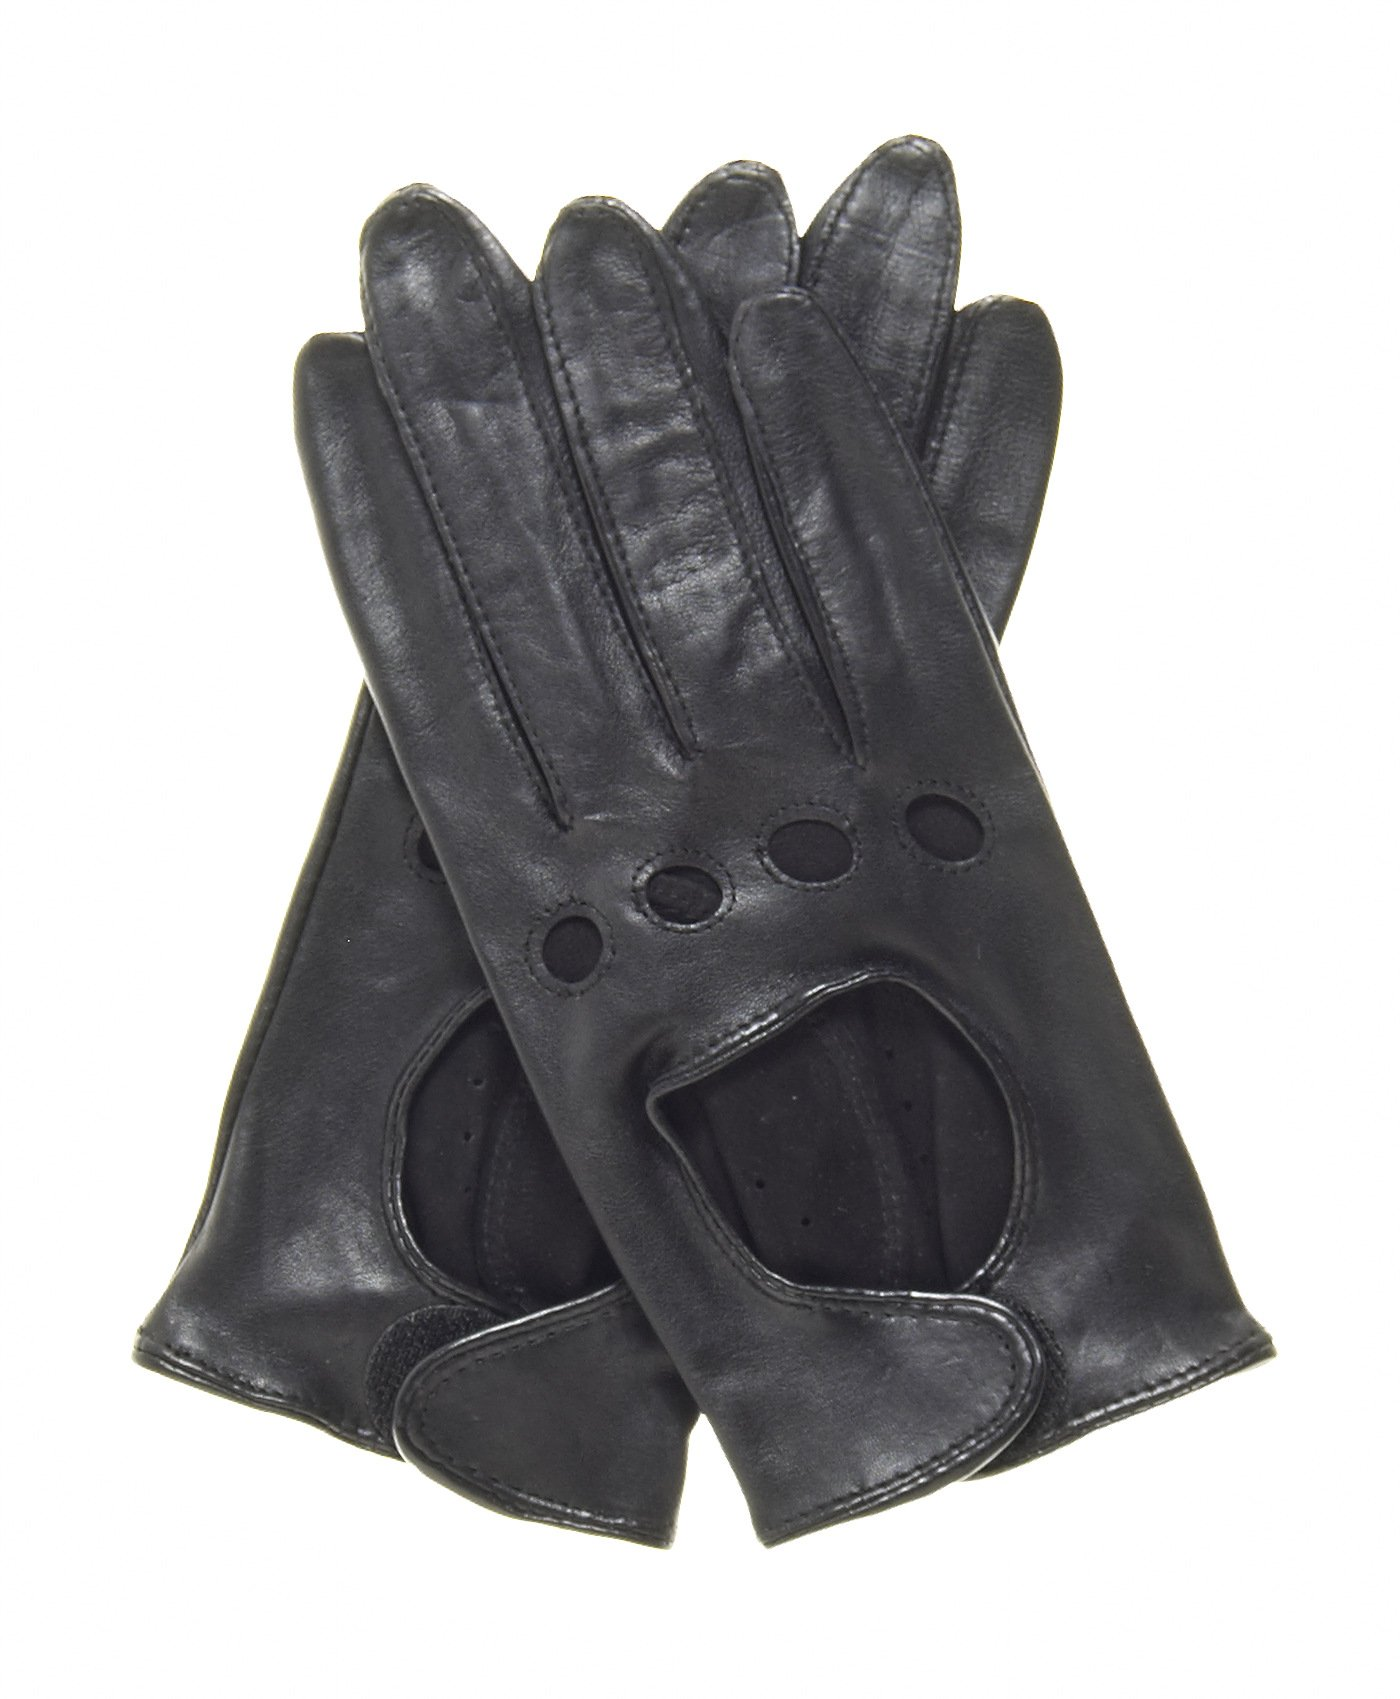 Pratt and Hart Women's Womens Leather Driving Gloves Size S Color Black